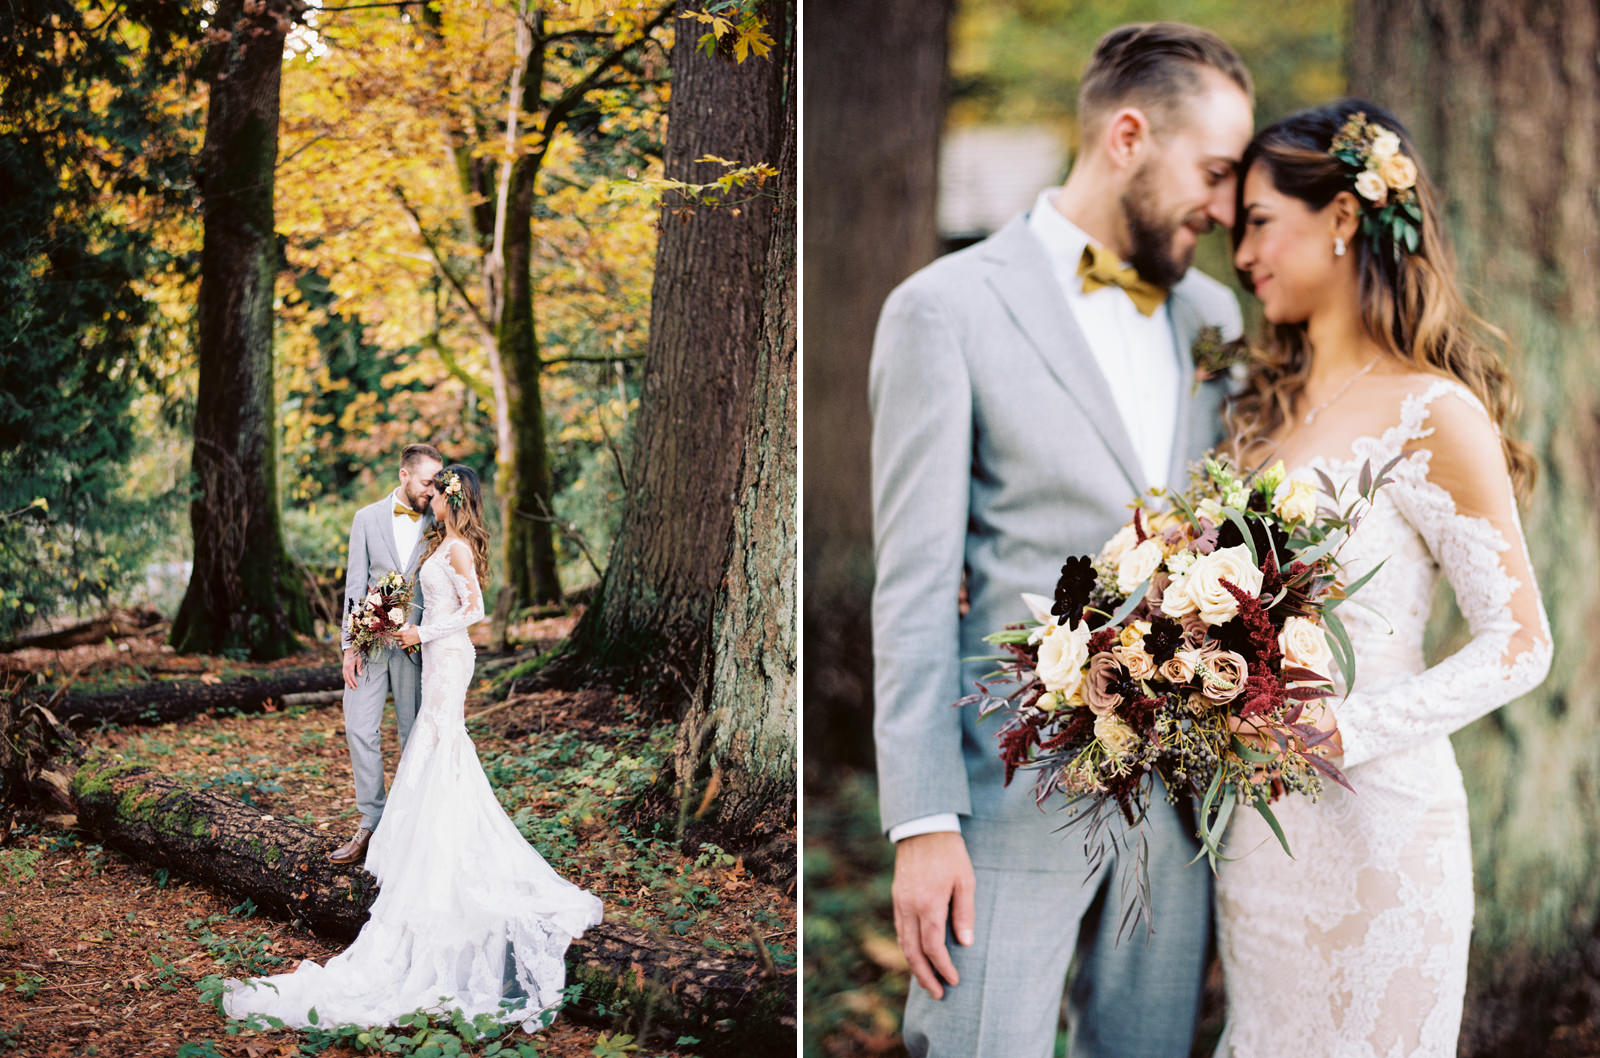 123-fall-wedding-photos-with-long-sleeve-pronovias-bridal-gown-and-thatch-floral-bouquet.jpg